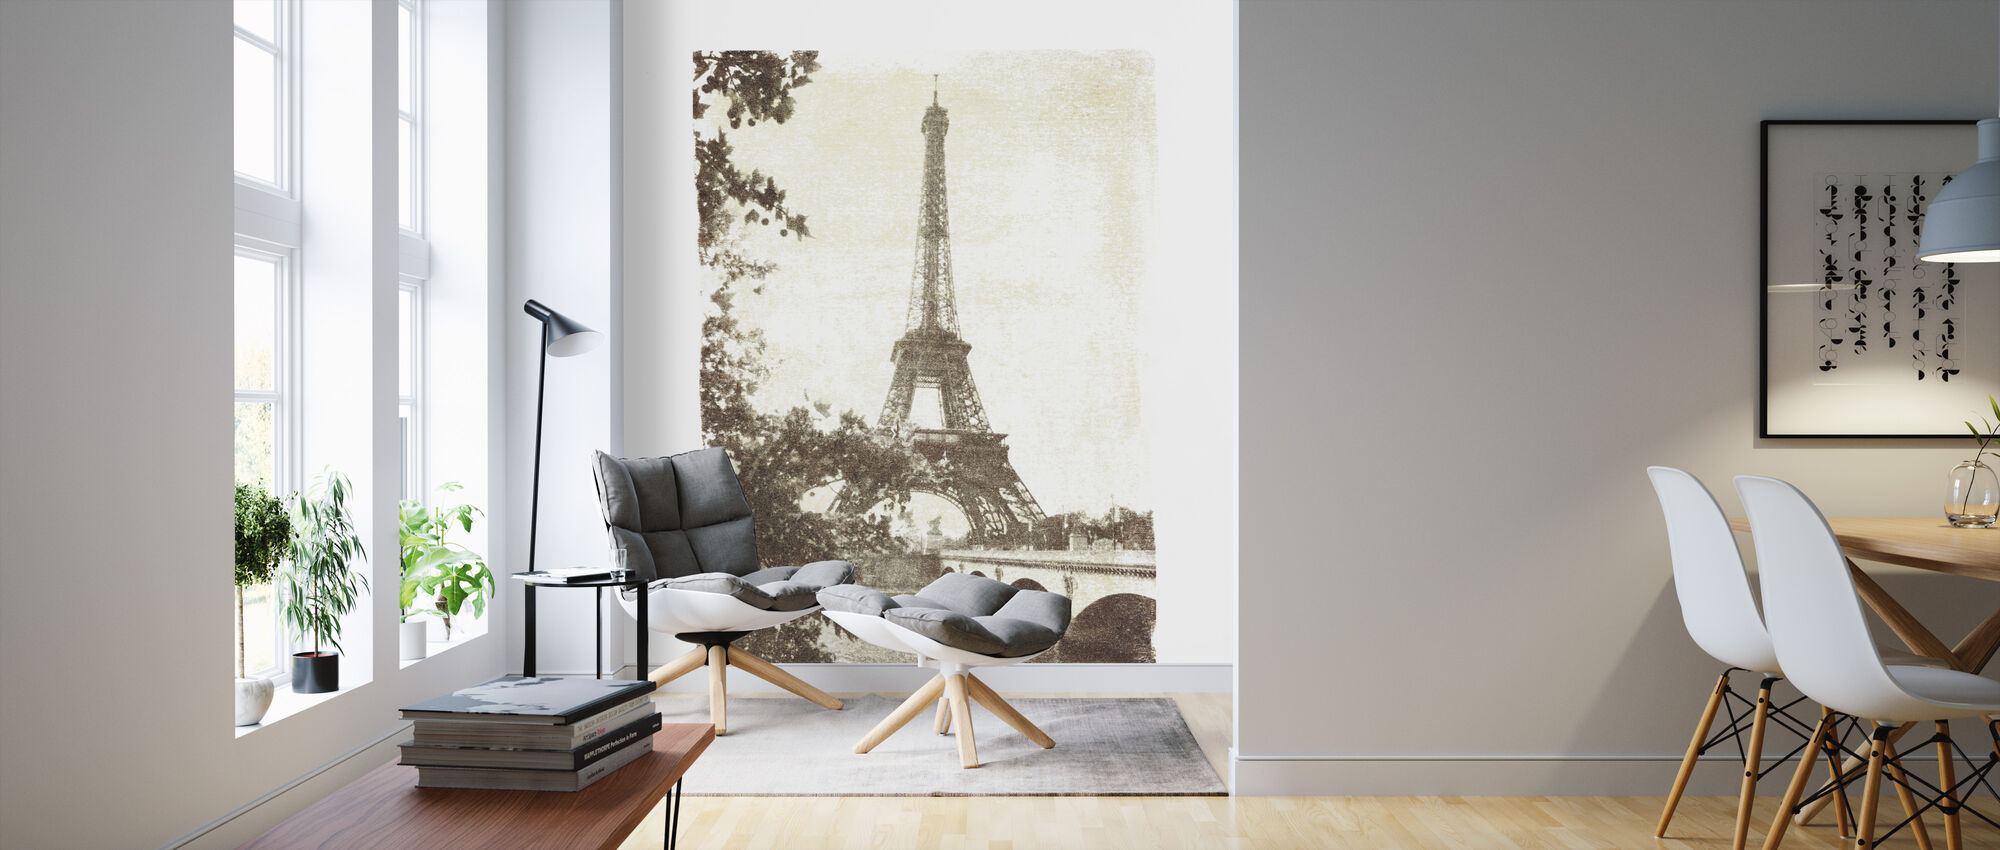 Vintage Eiffel Tower - Wallpaper - Living Room